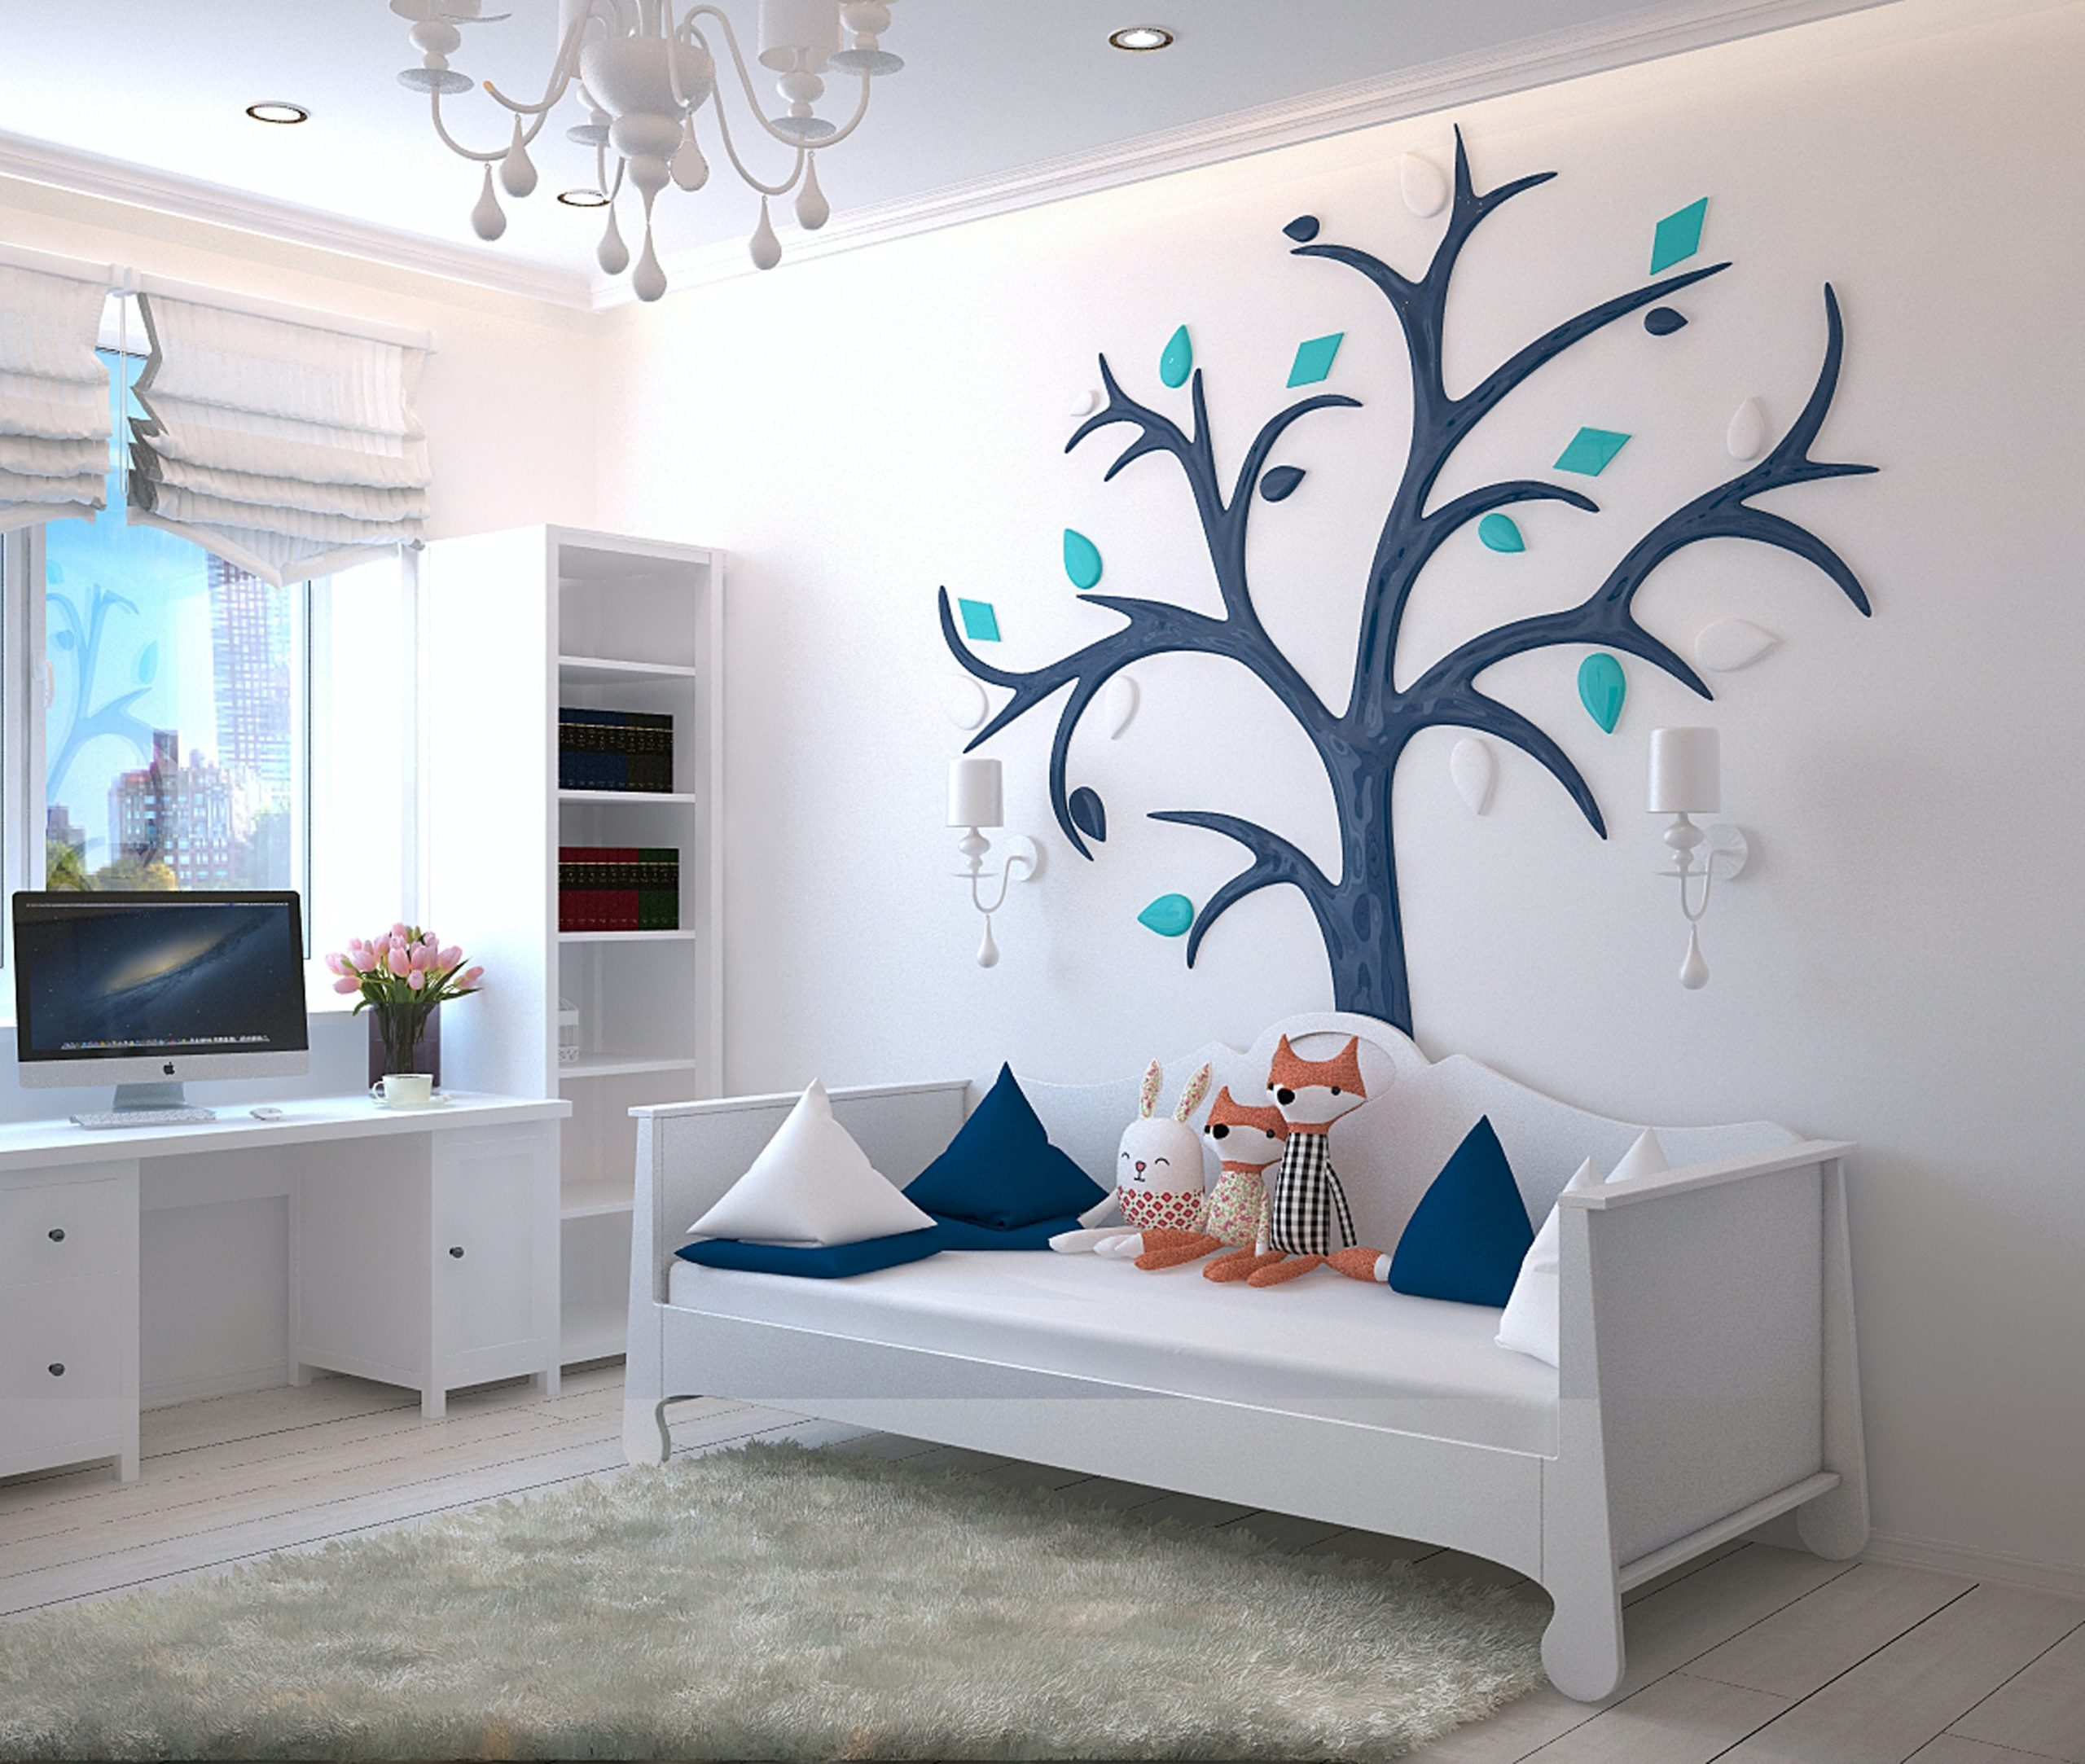 Small kids bedroom with white walls and tree decal